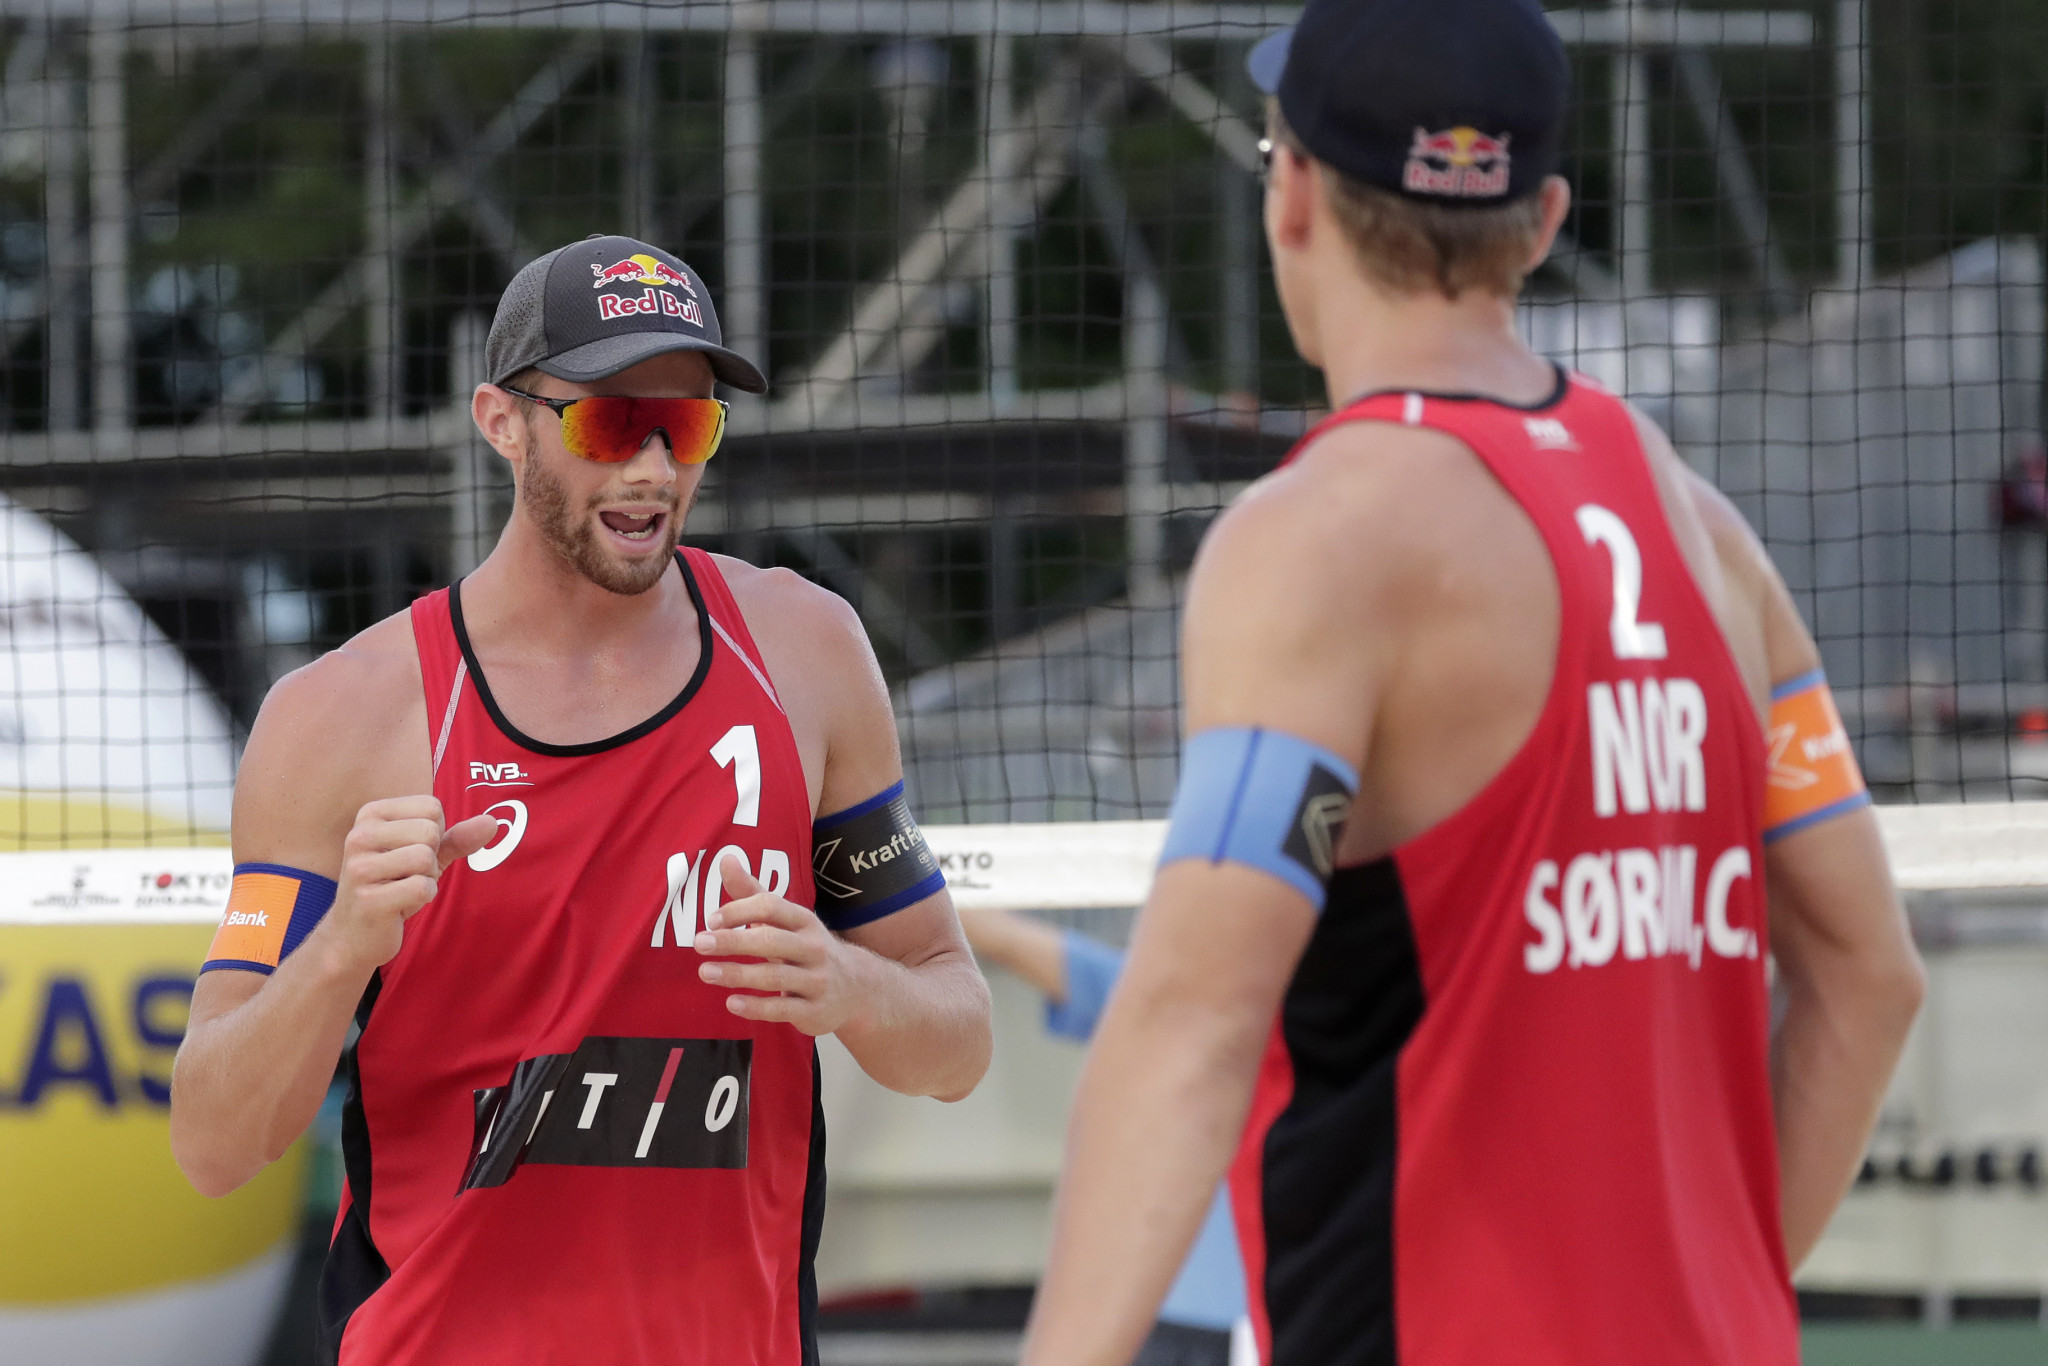 Mol and Sørum reach last four in bid for European Beach Volleyball Championships hat-trick